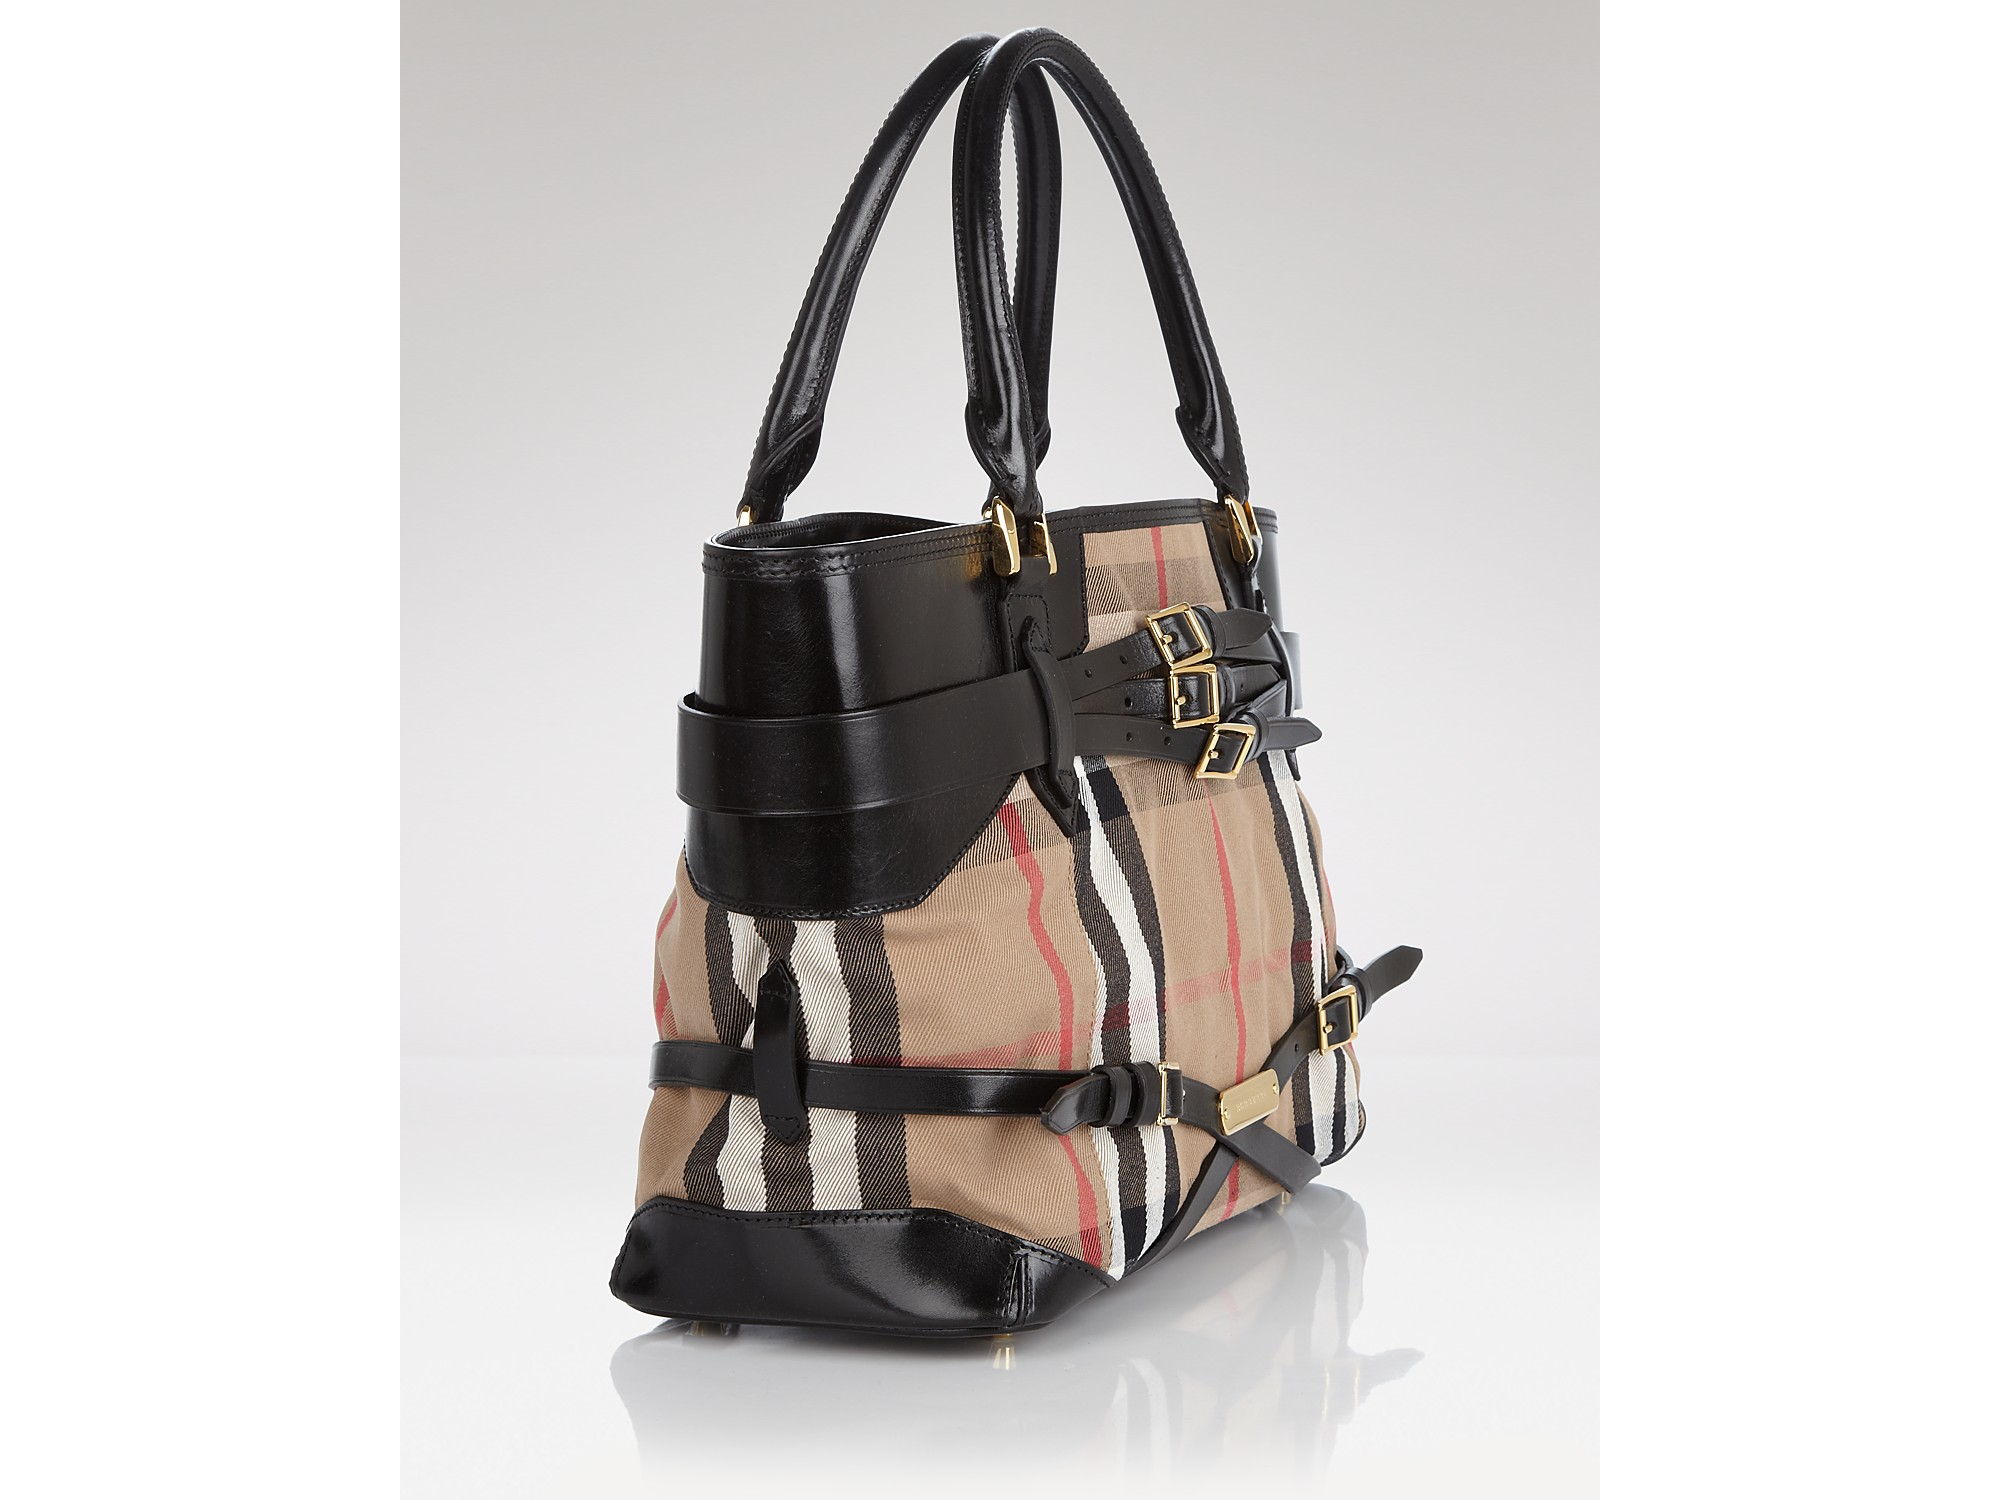 Lyst - Burberry Tote Bridle House Check Medium Lynher in Black 73064323fcea1